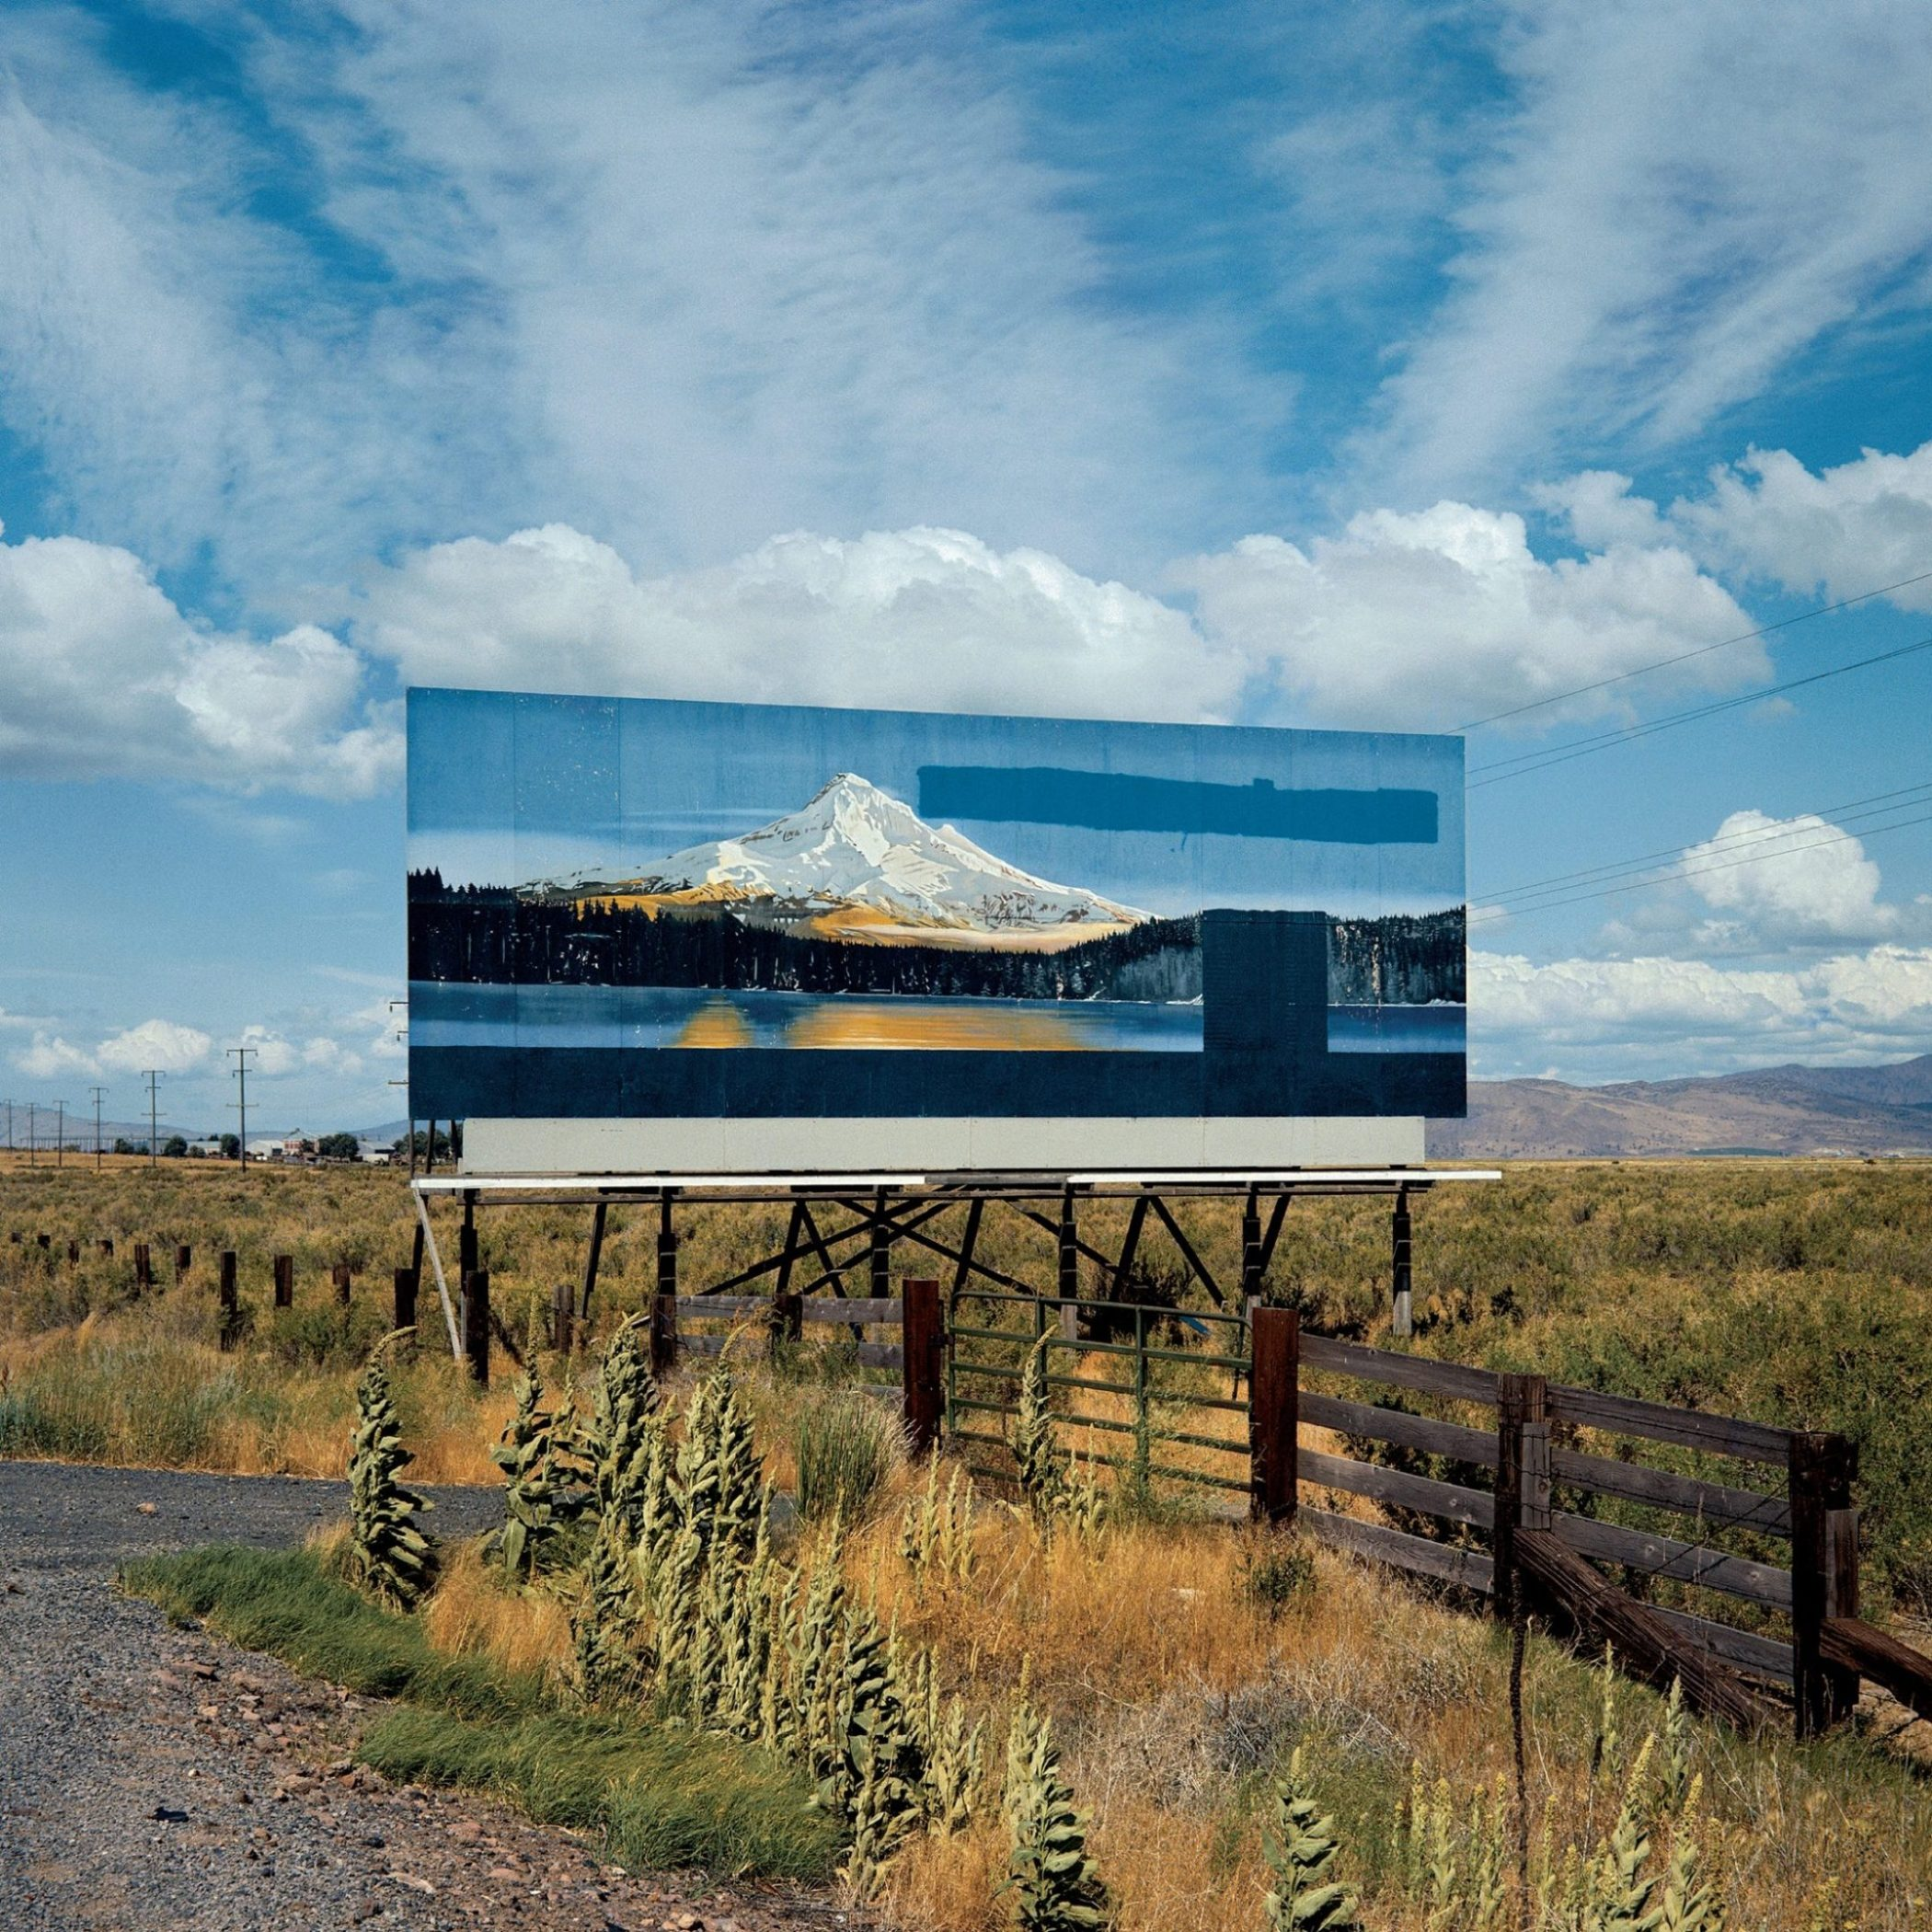 A billboard depicts a snow covered mountain, lake, and pine tree forest. A barbwire and wooden fence separates the billboard from the road. The land is flat and grassy with hills in the background.